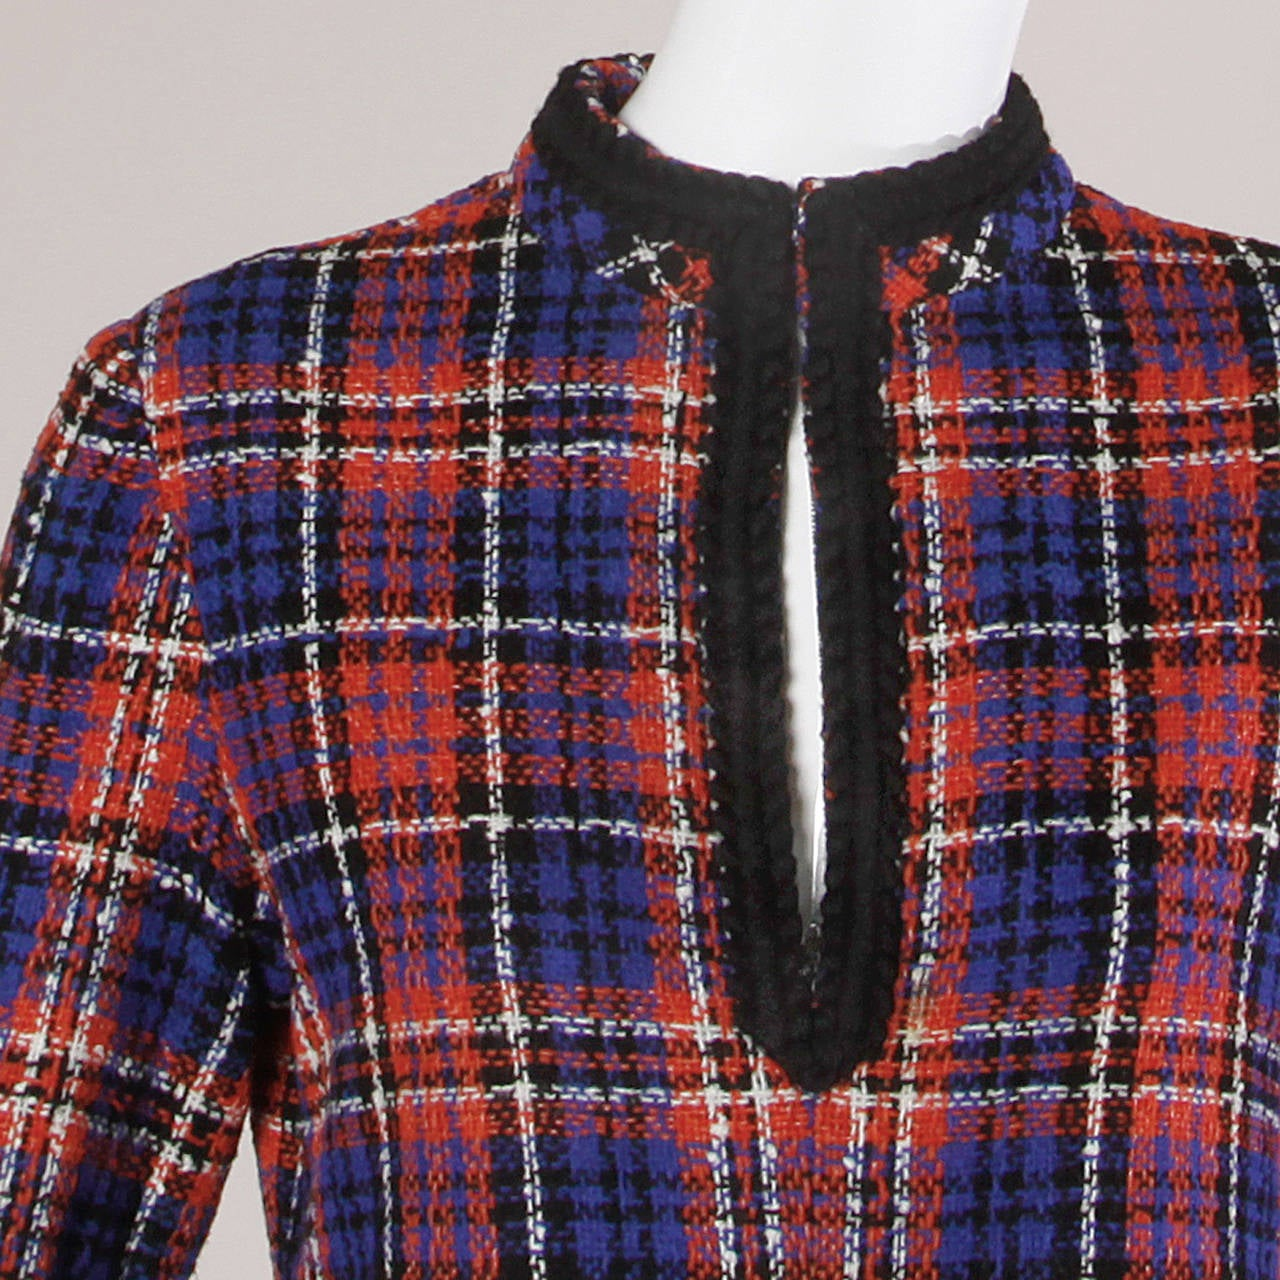 Black Oscar de la Renta Vintage 1960s Plaid Dress For Sale